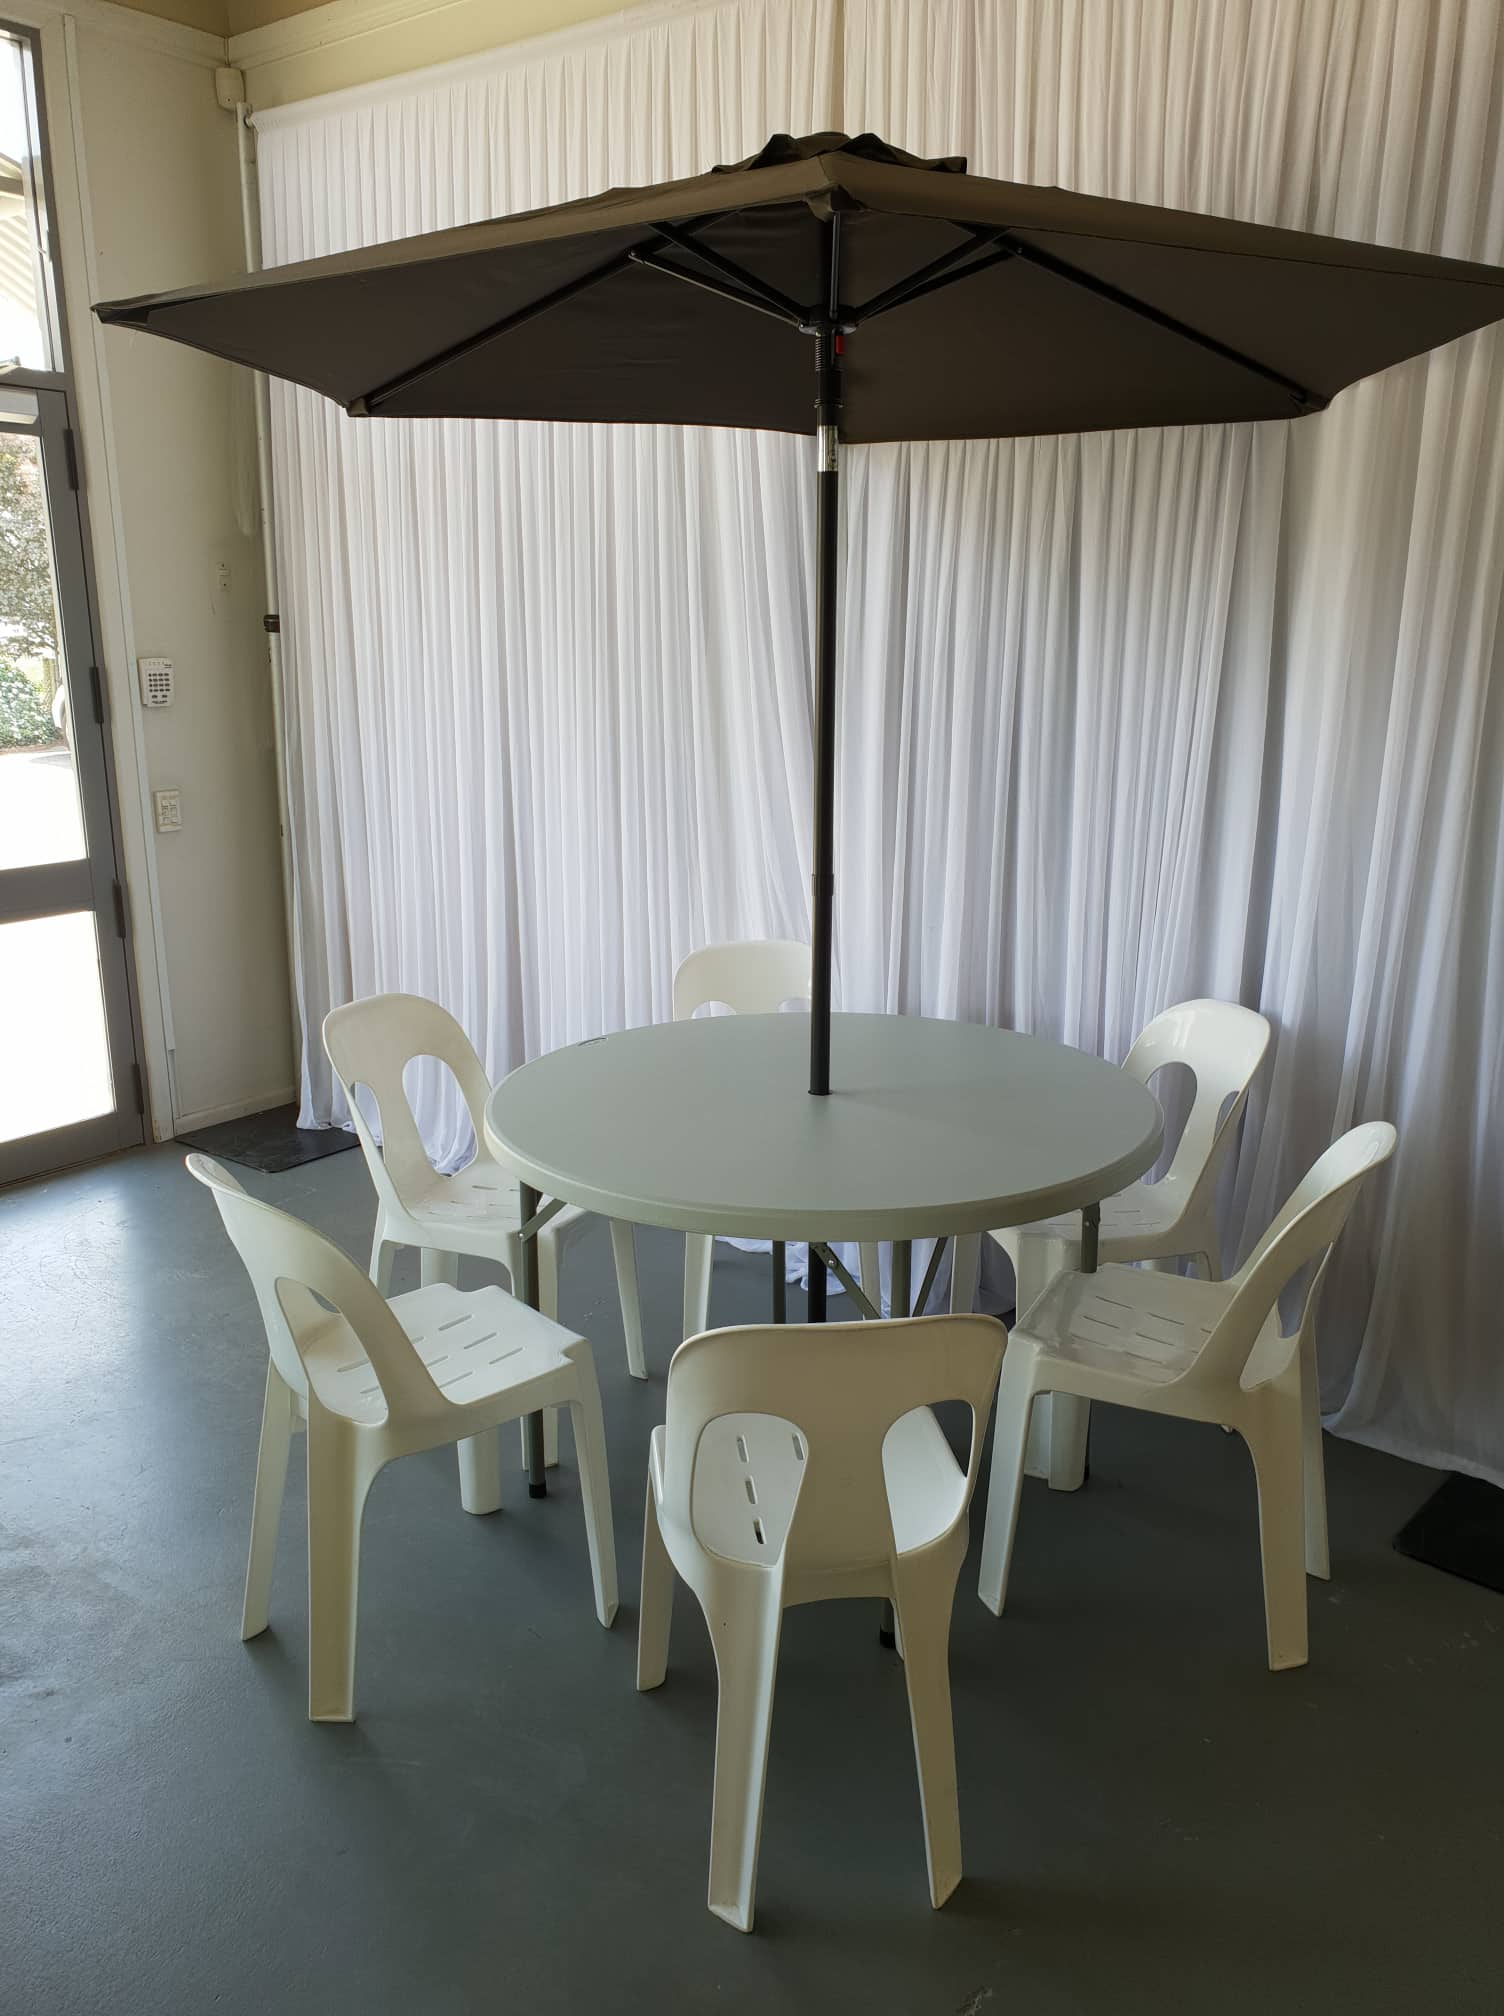 4 foot round table with umbrella